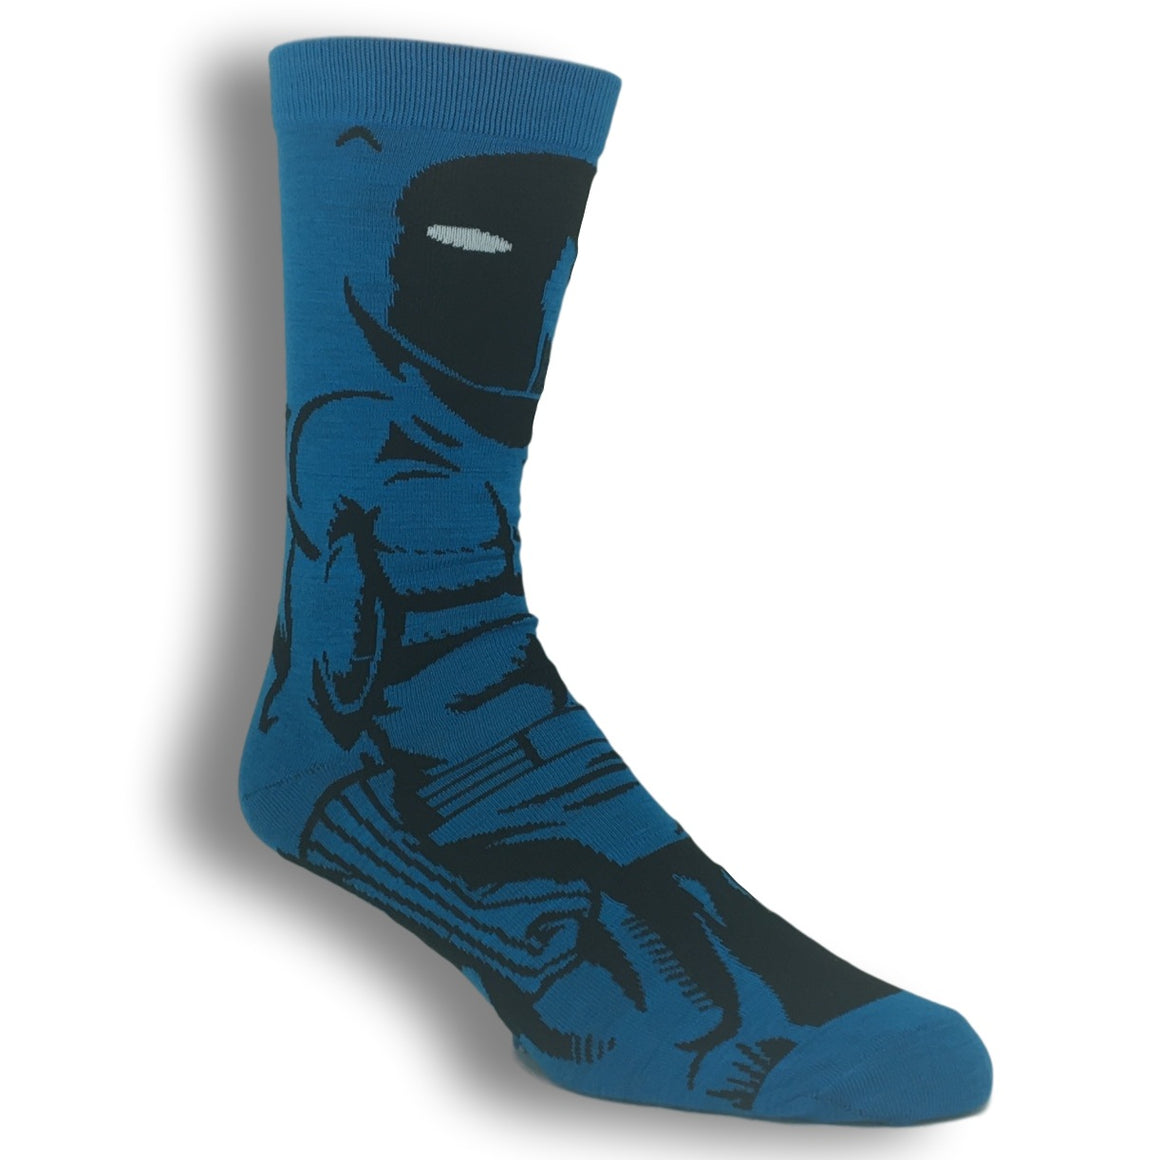 Marvel Black Panther 360 Superhero Socks - The Sock Spot